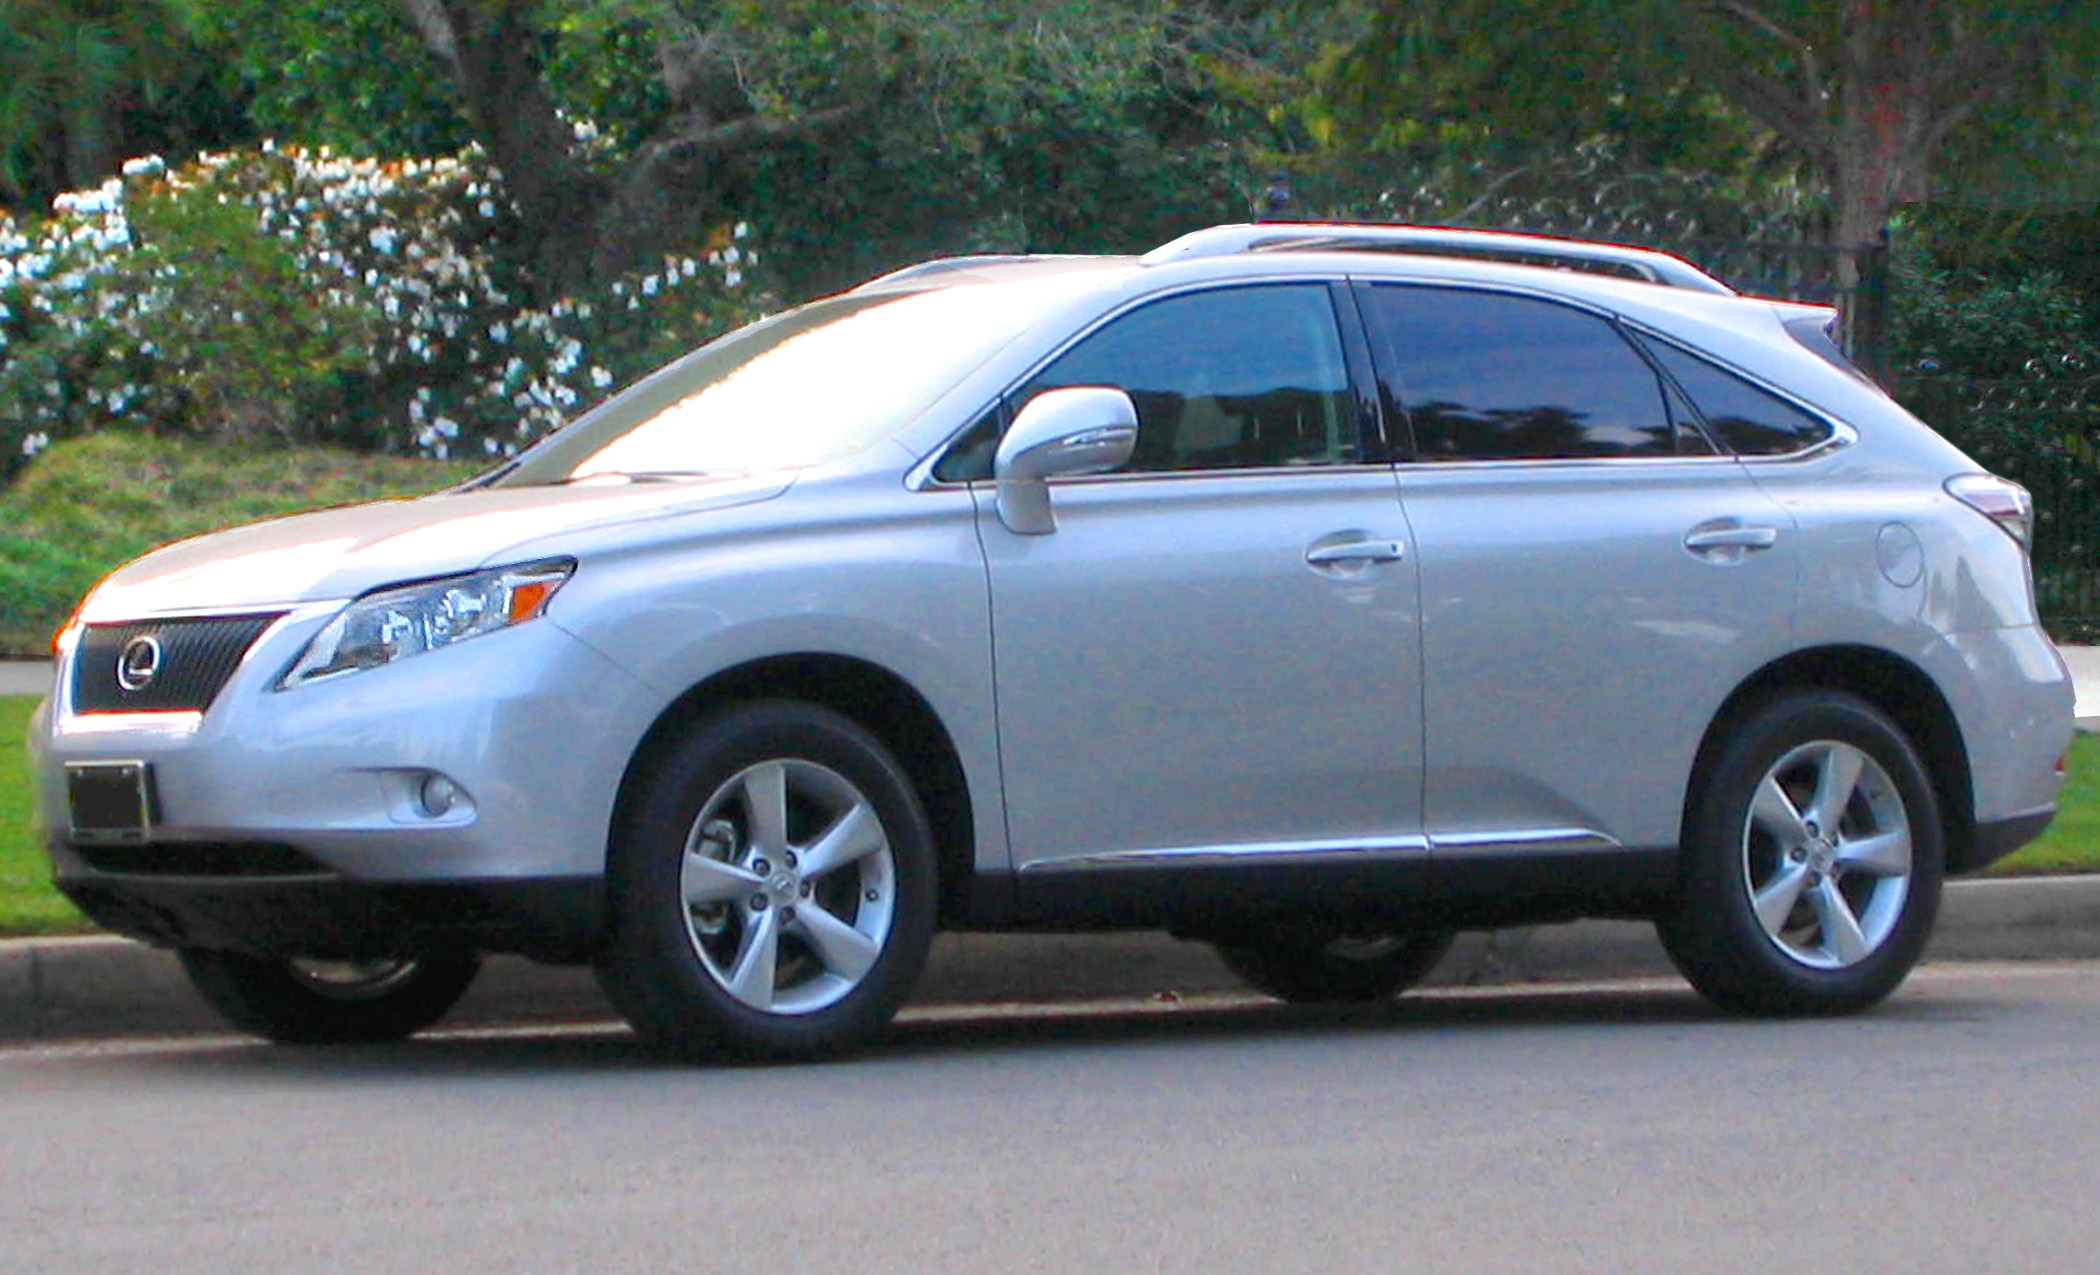 File2010 Lexus Rx350 Tungsten Pearl 01 Wikimedia Commons Ls1 Coil Connector Wiring Diagram